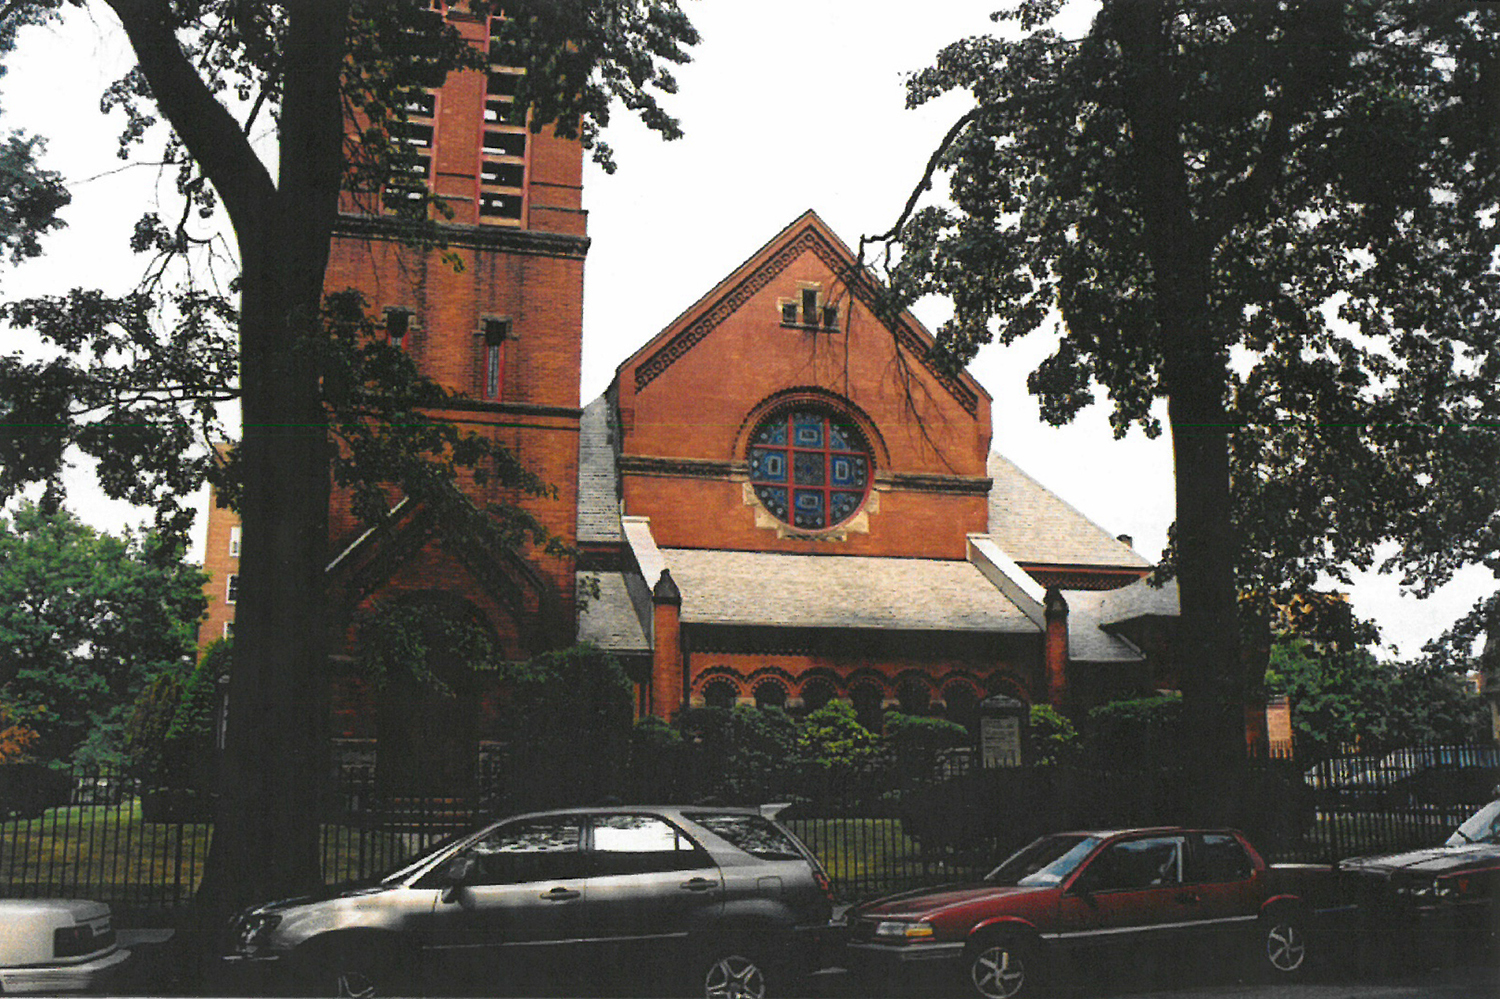 Bowne Street Community Church, 38-01 Bowne Street. LPC photo.